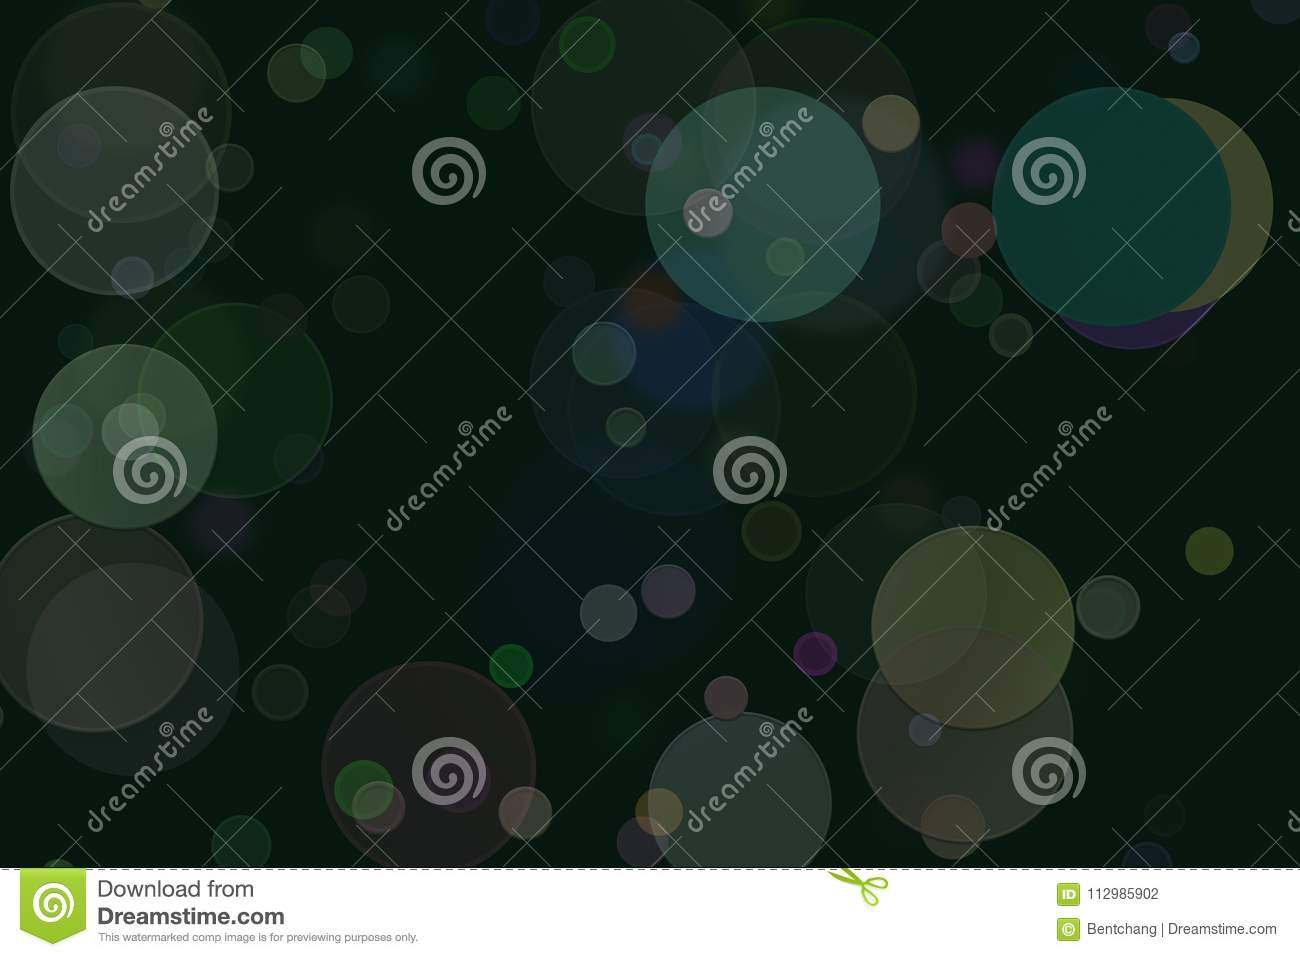 Abstract illustrations of shape, conceptual background. Pattern, brushed, style, wallpaper & art.